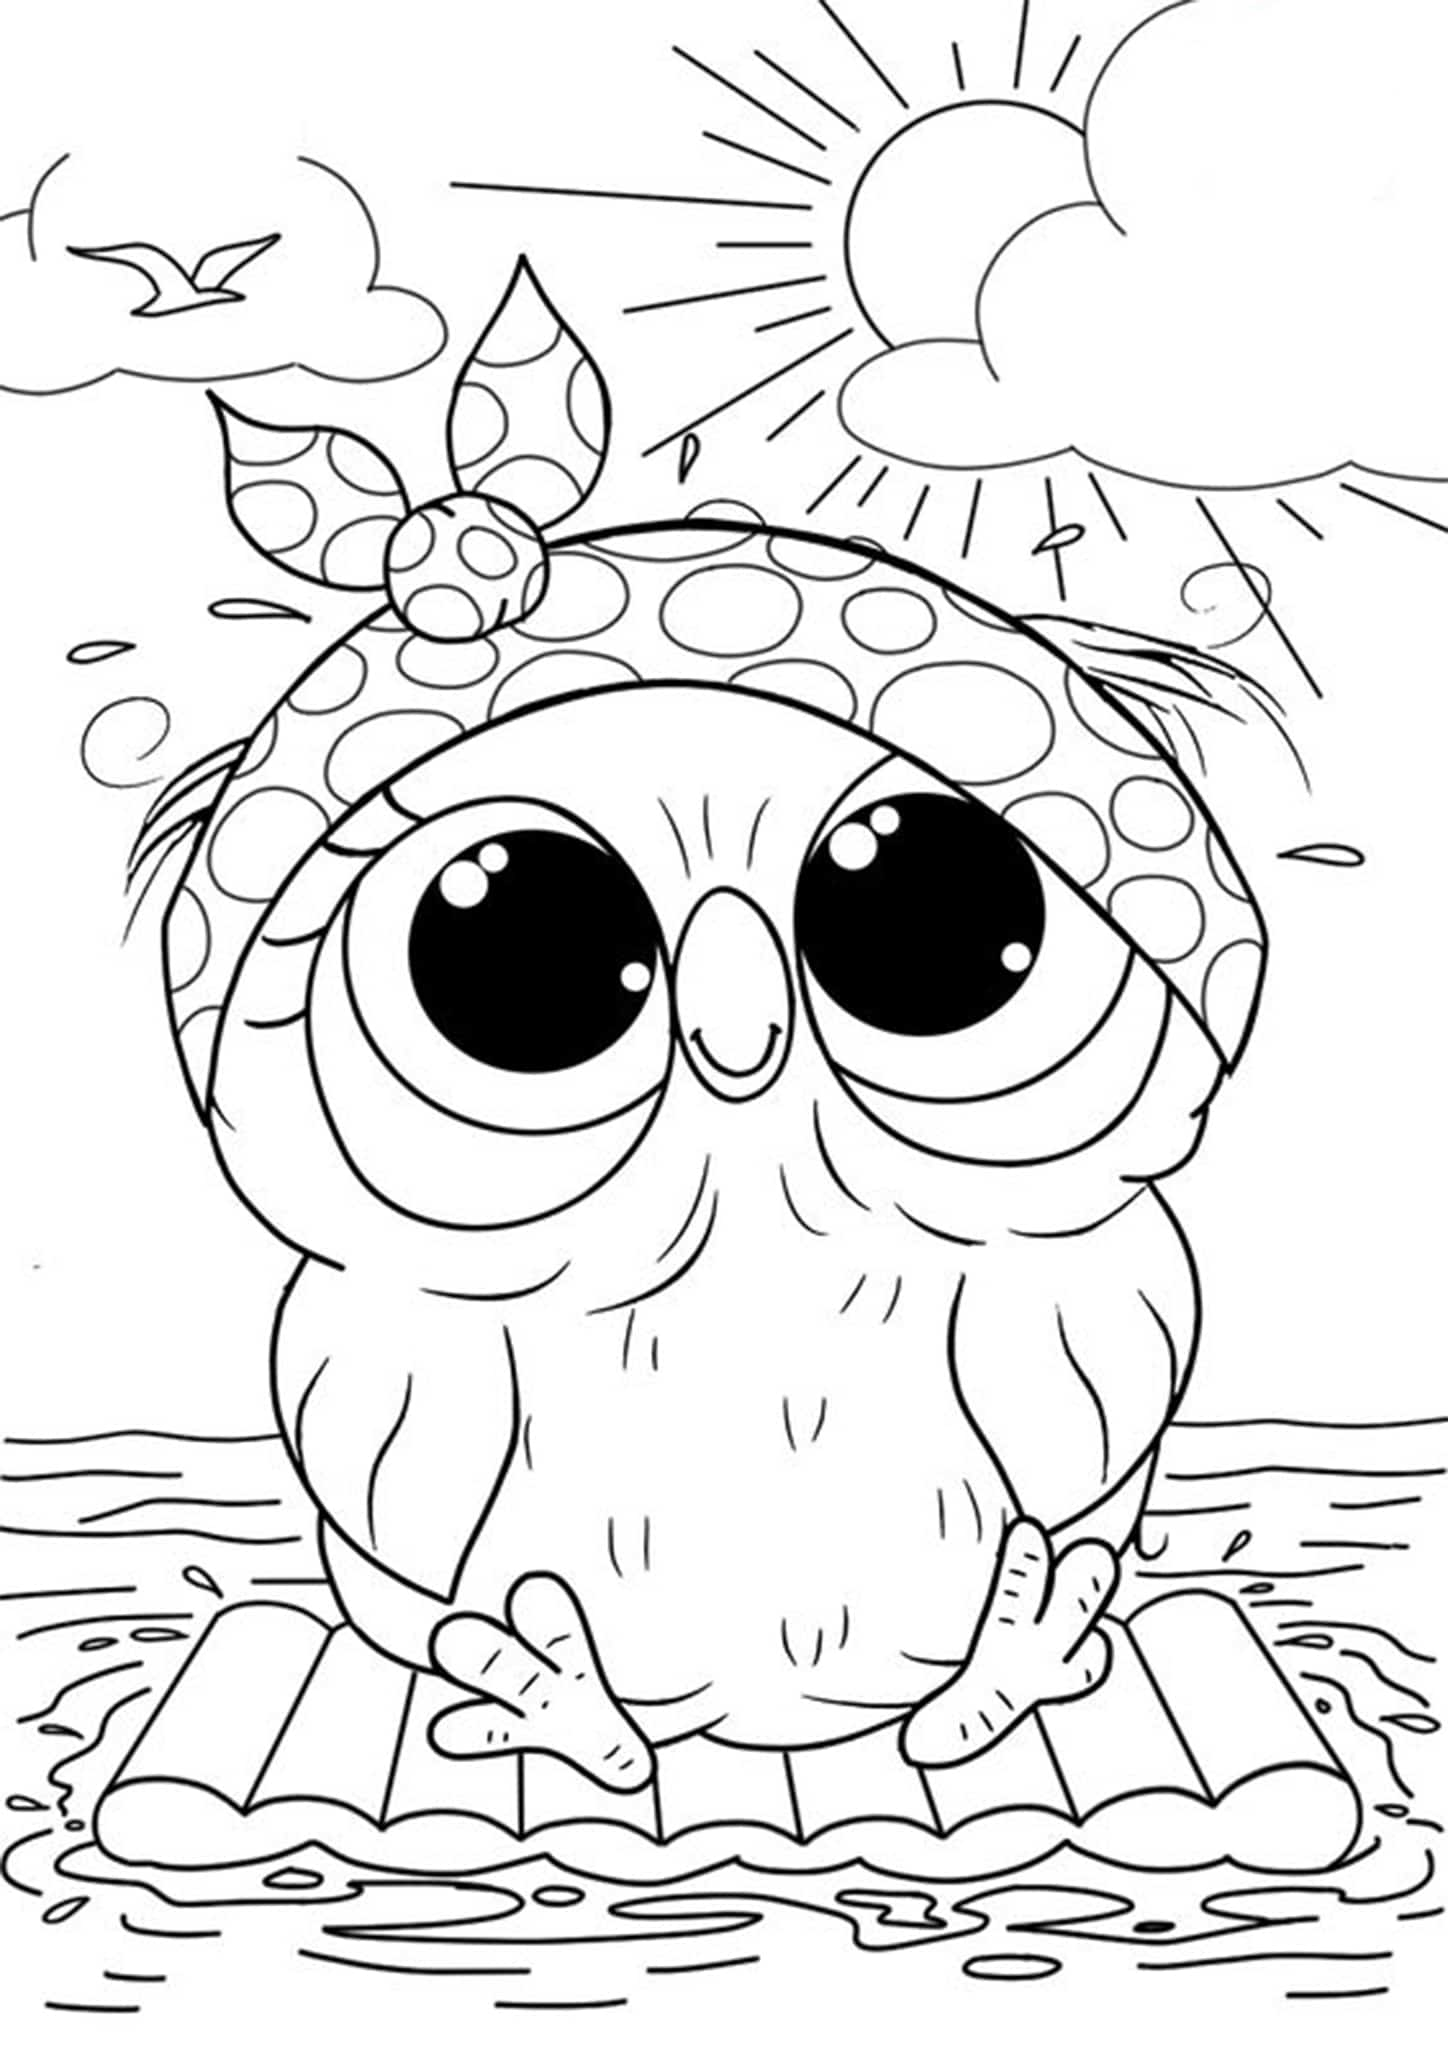 coloring printable pages for kids free printable tangled coloring pages for kids cool2bkids coloring printable for kids pages